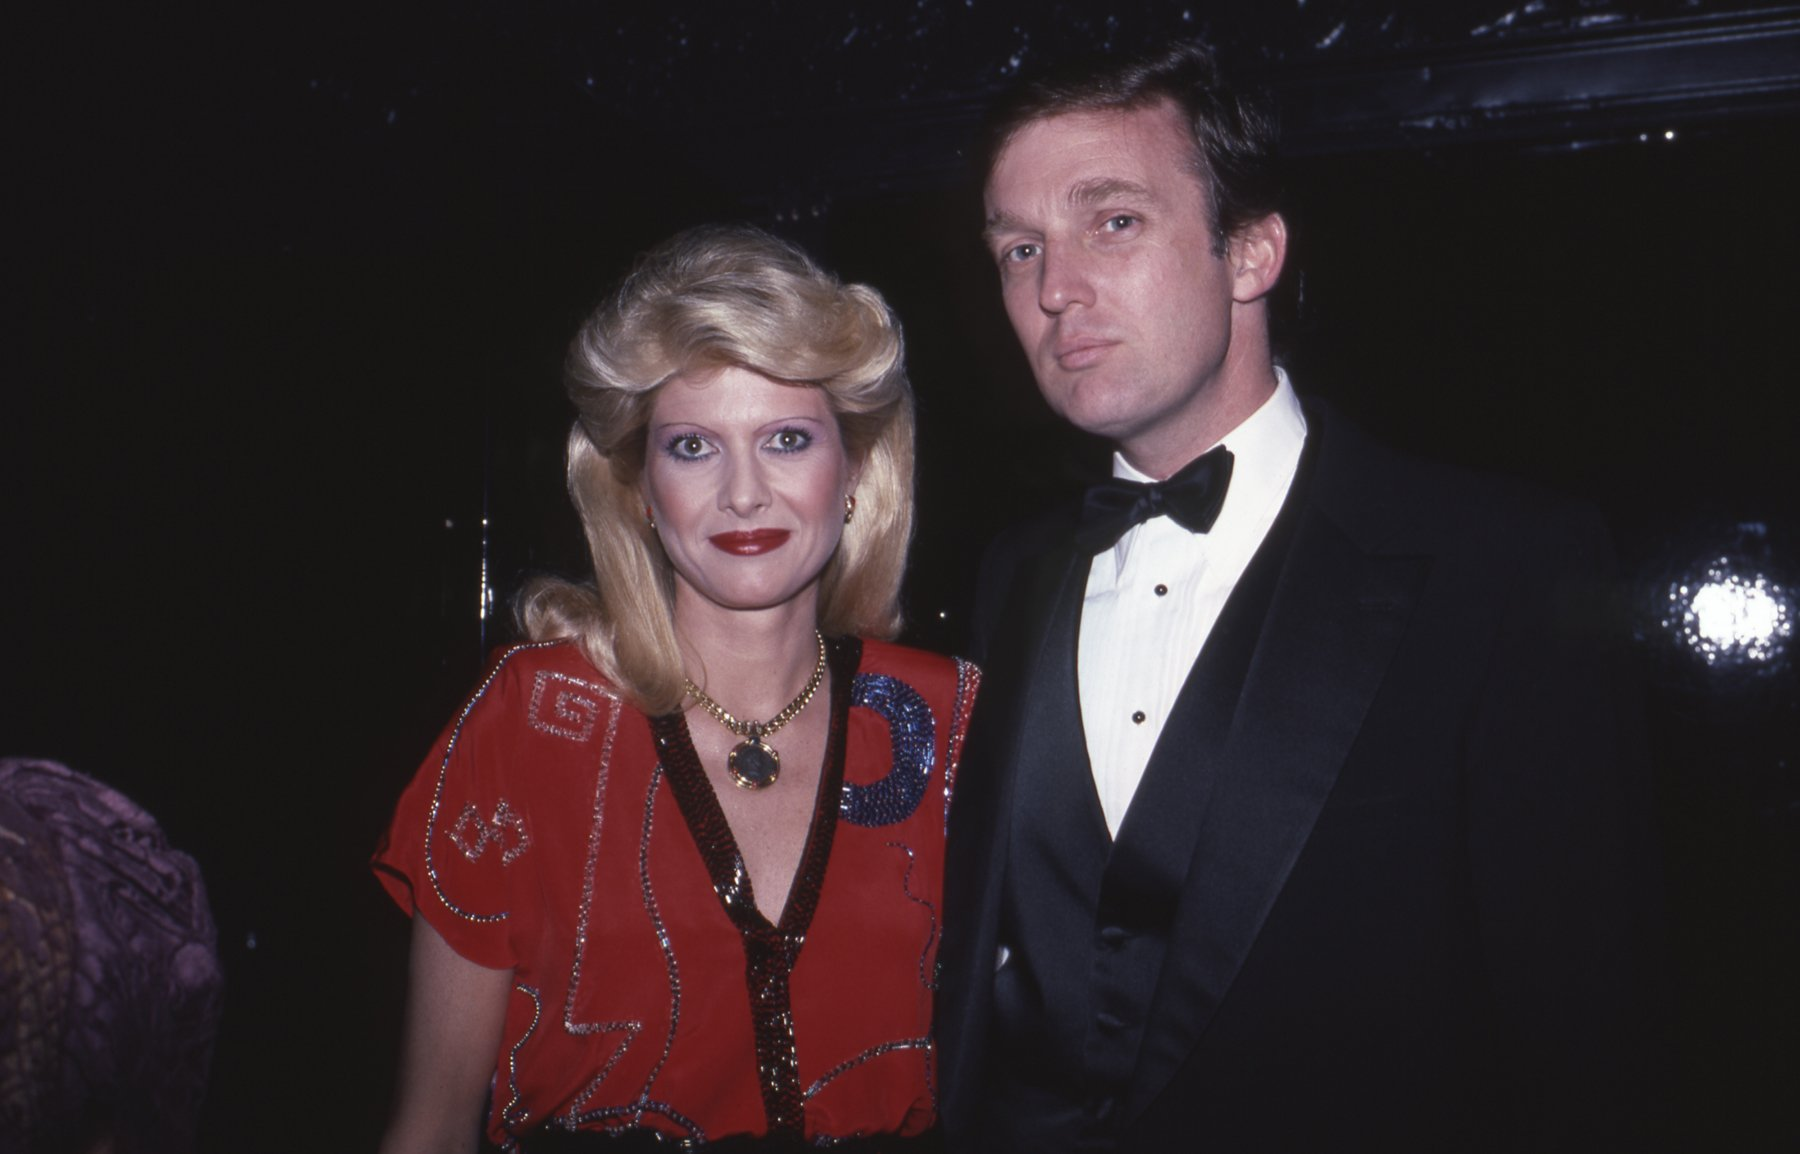 Ivana Trump and Donald Trump in December 1982 in New York City | Photo: Getty Images